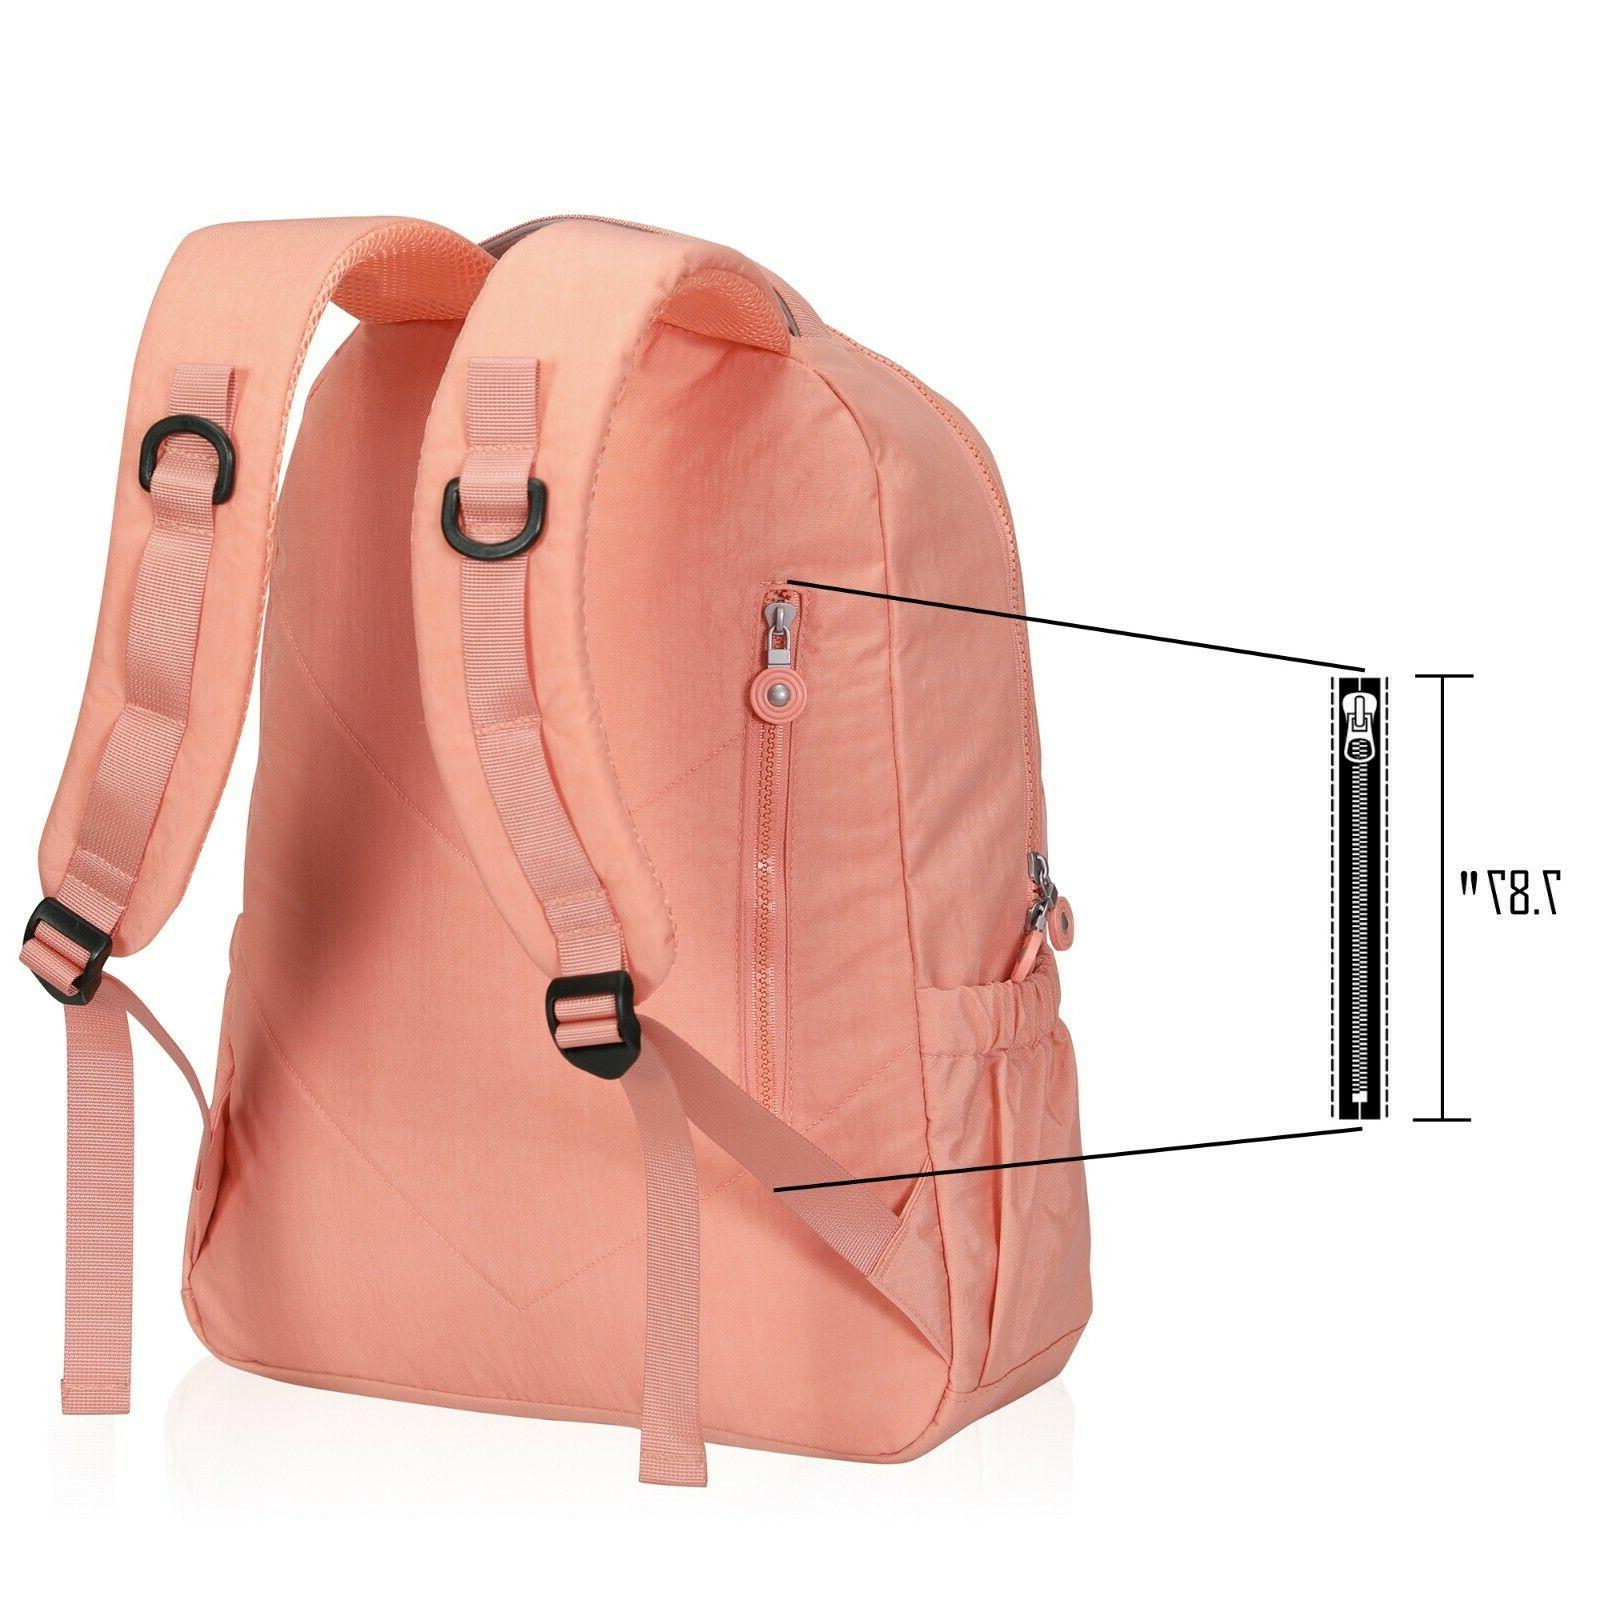 Hynes Eagle Backpack Fits 15.6 inches